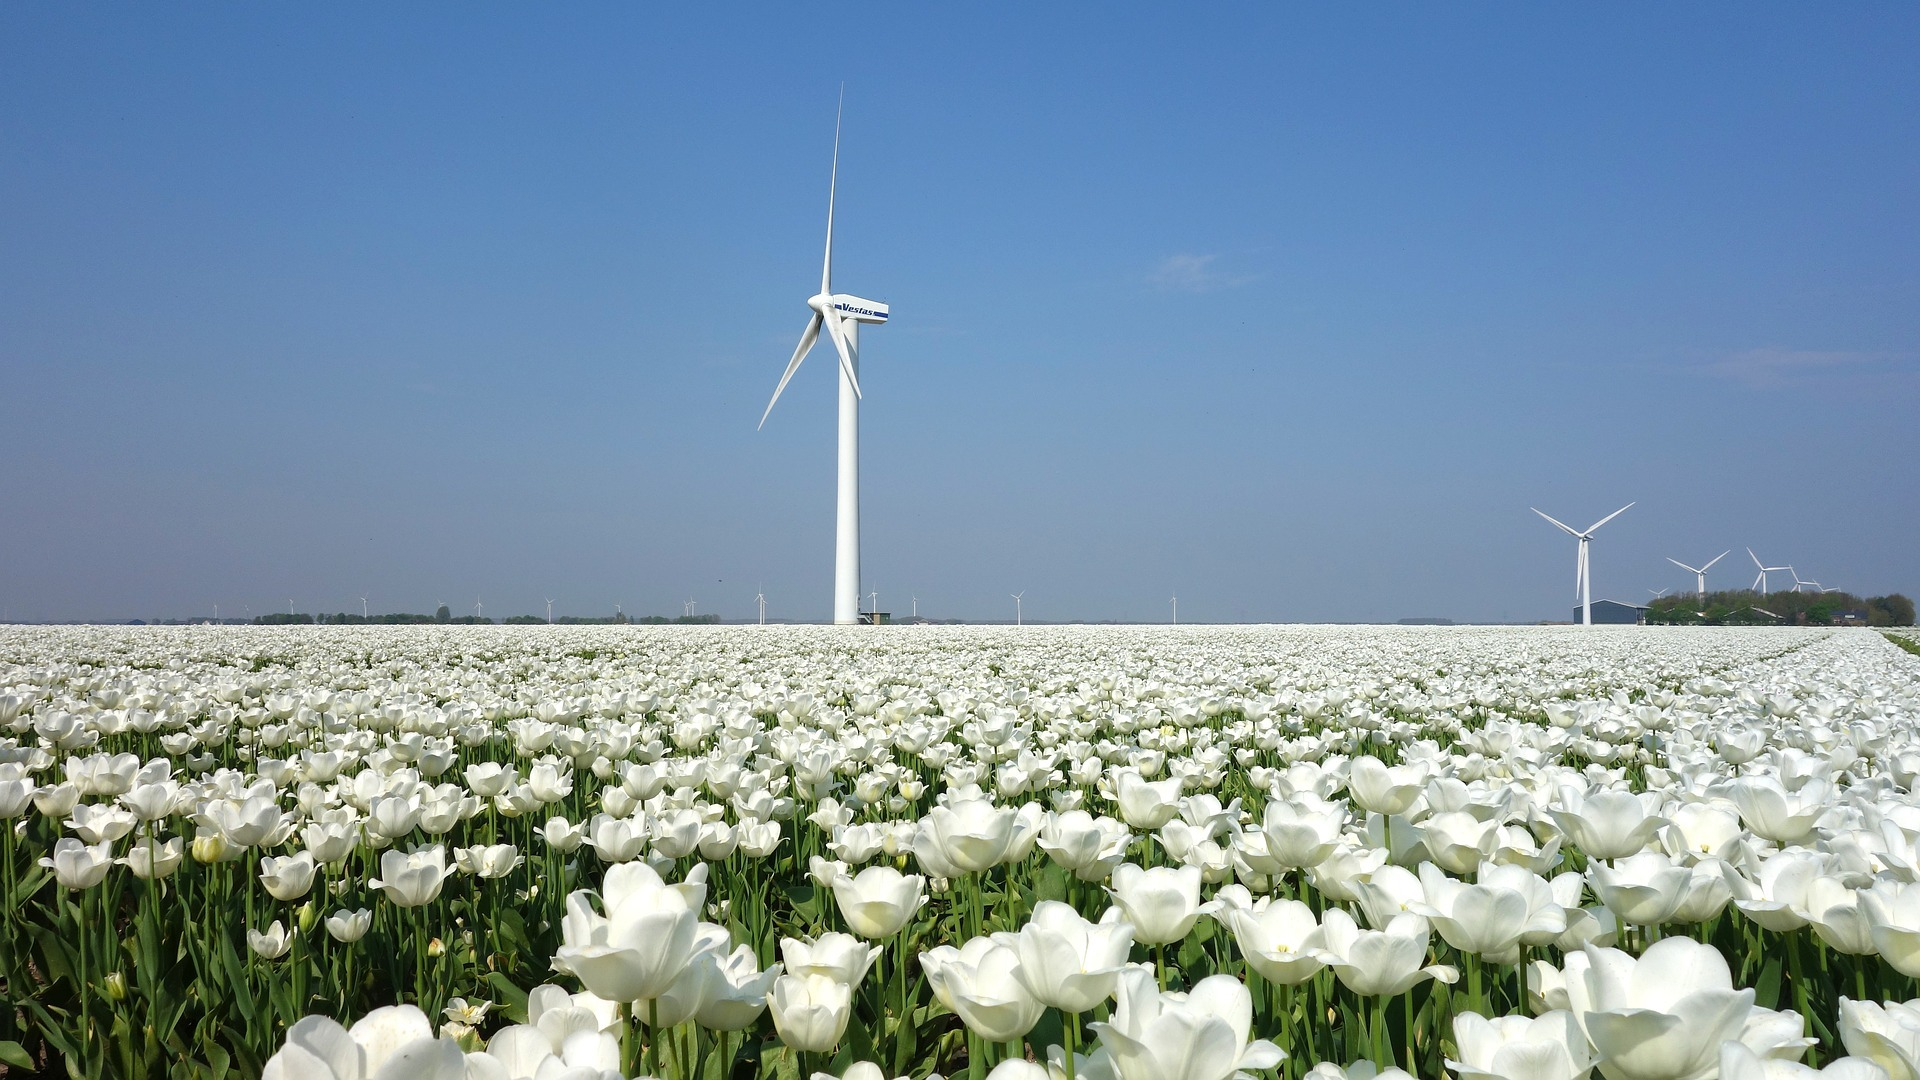 A windmill in a field of tulips in The Netherlands